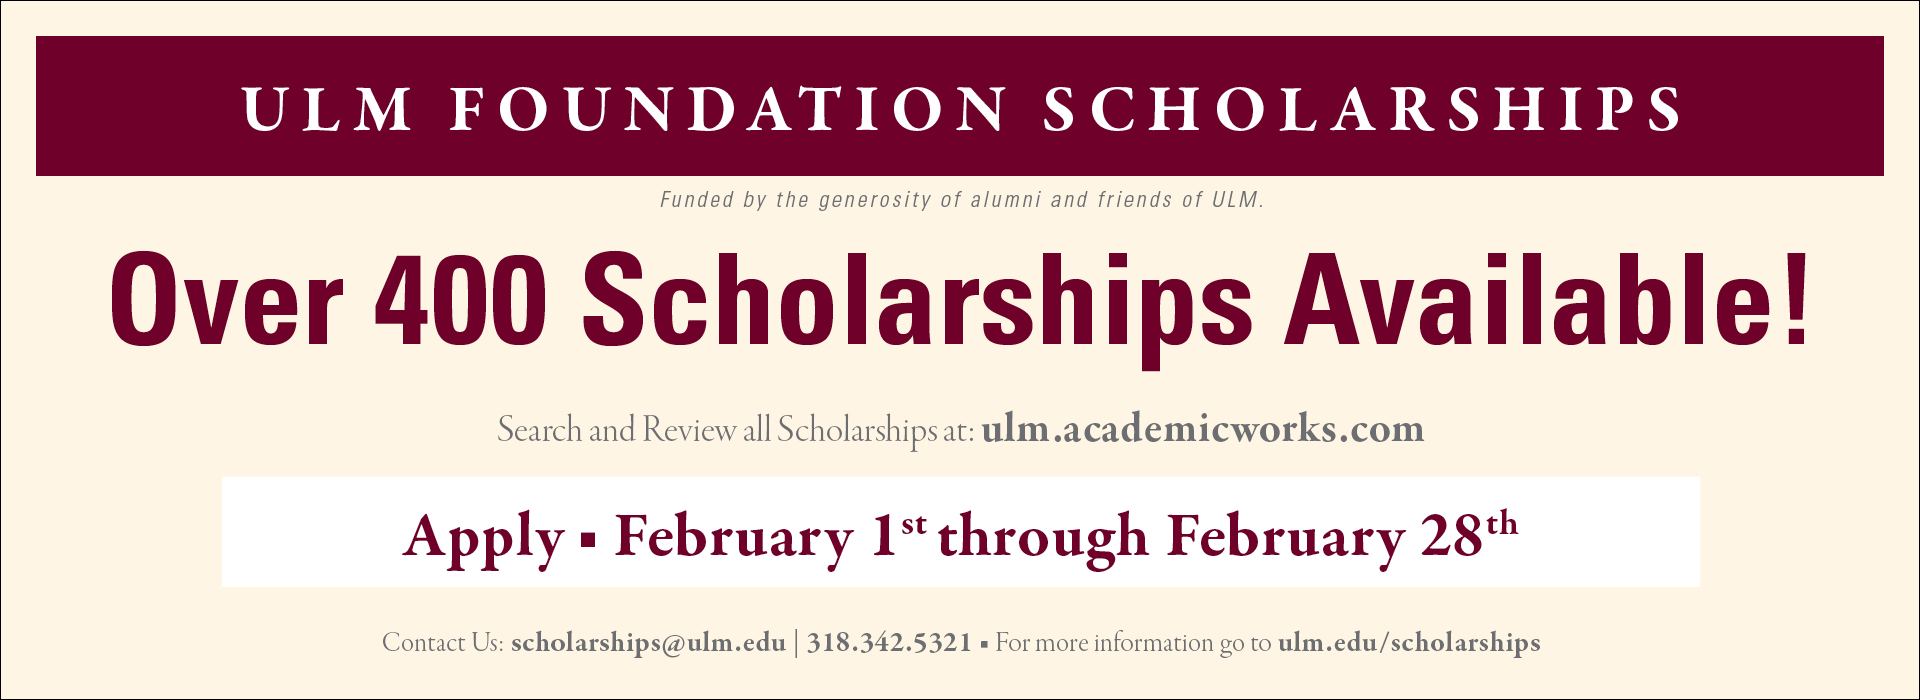 Foundation Scholarships Applications Open Announcement